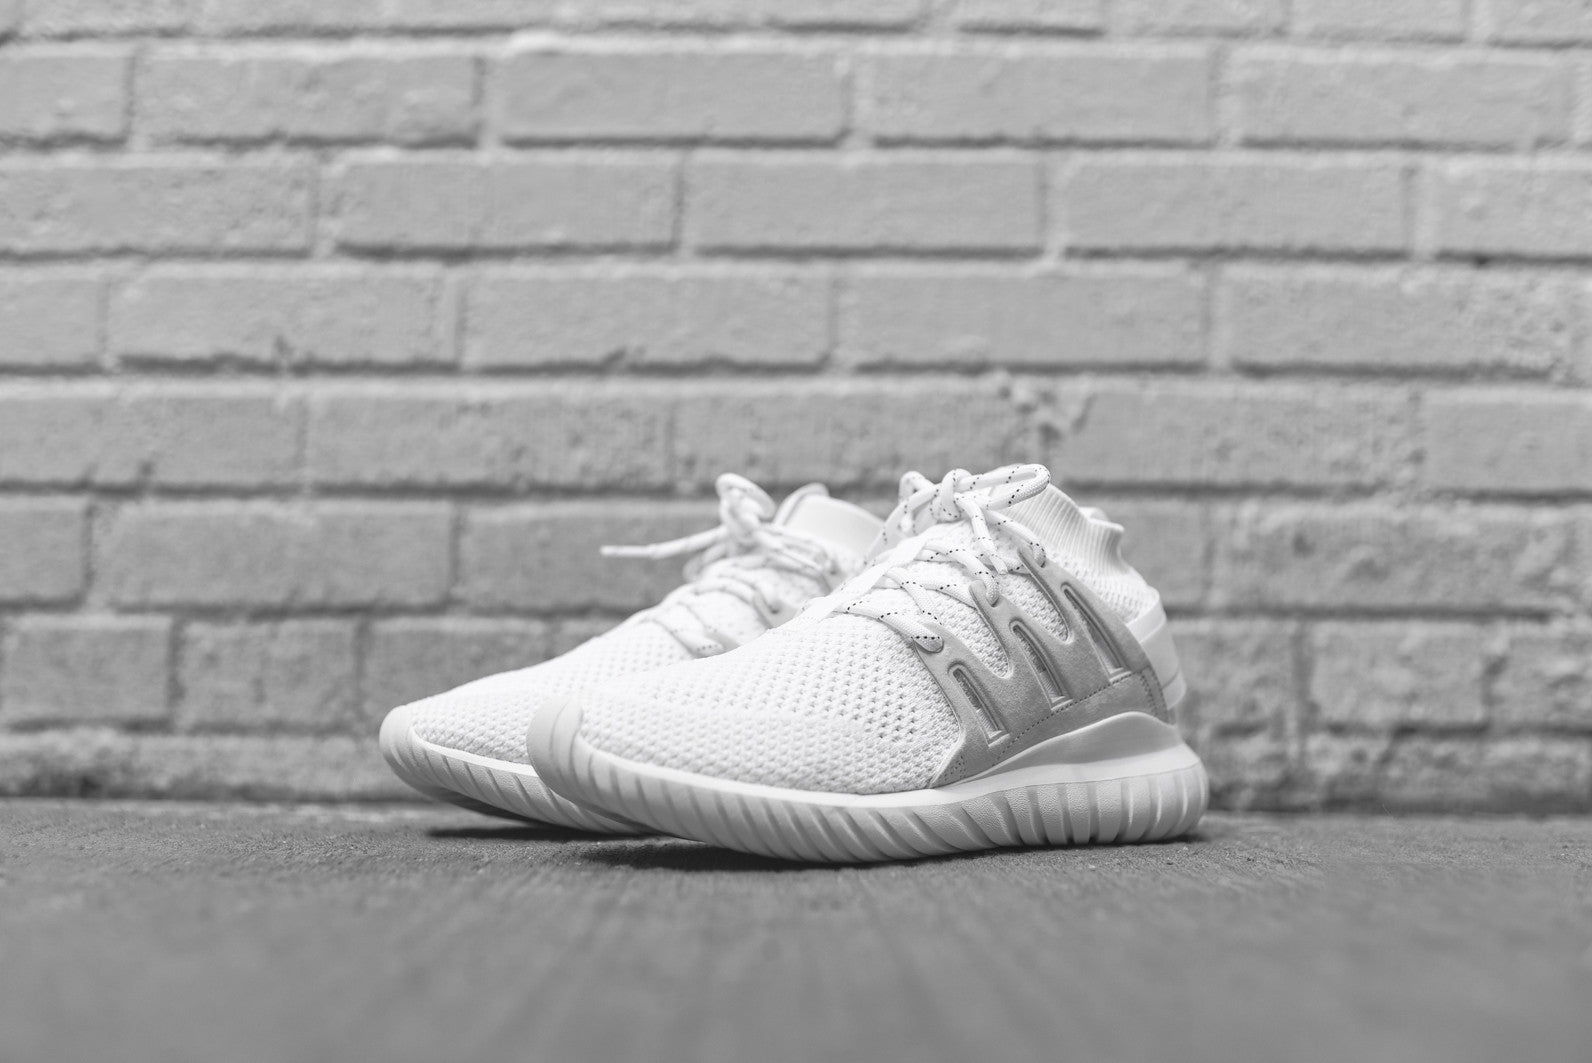 adidas Originals Tubular Nova Primeknit - Triple White